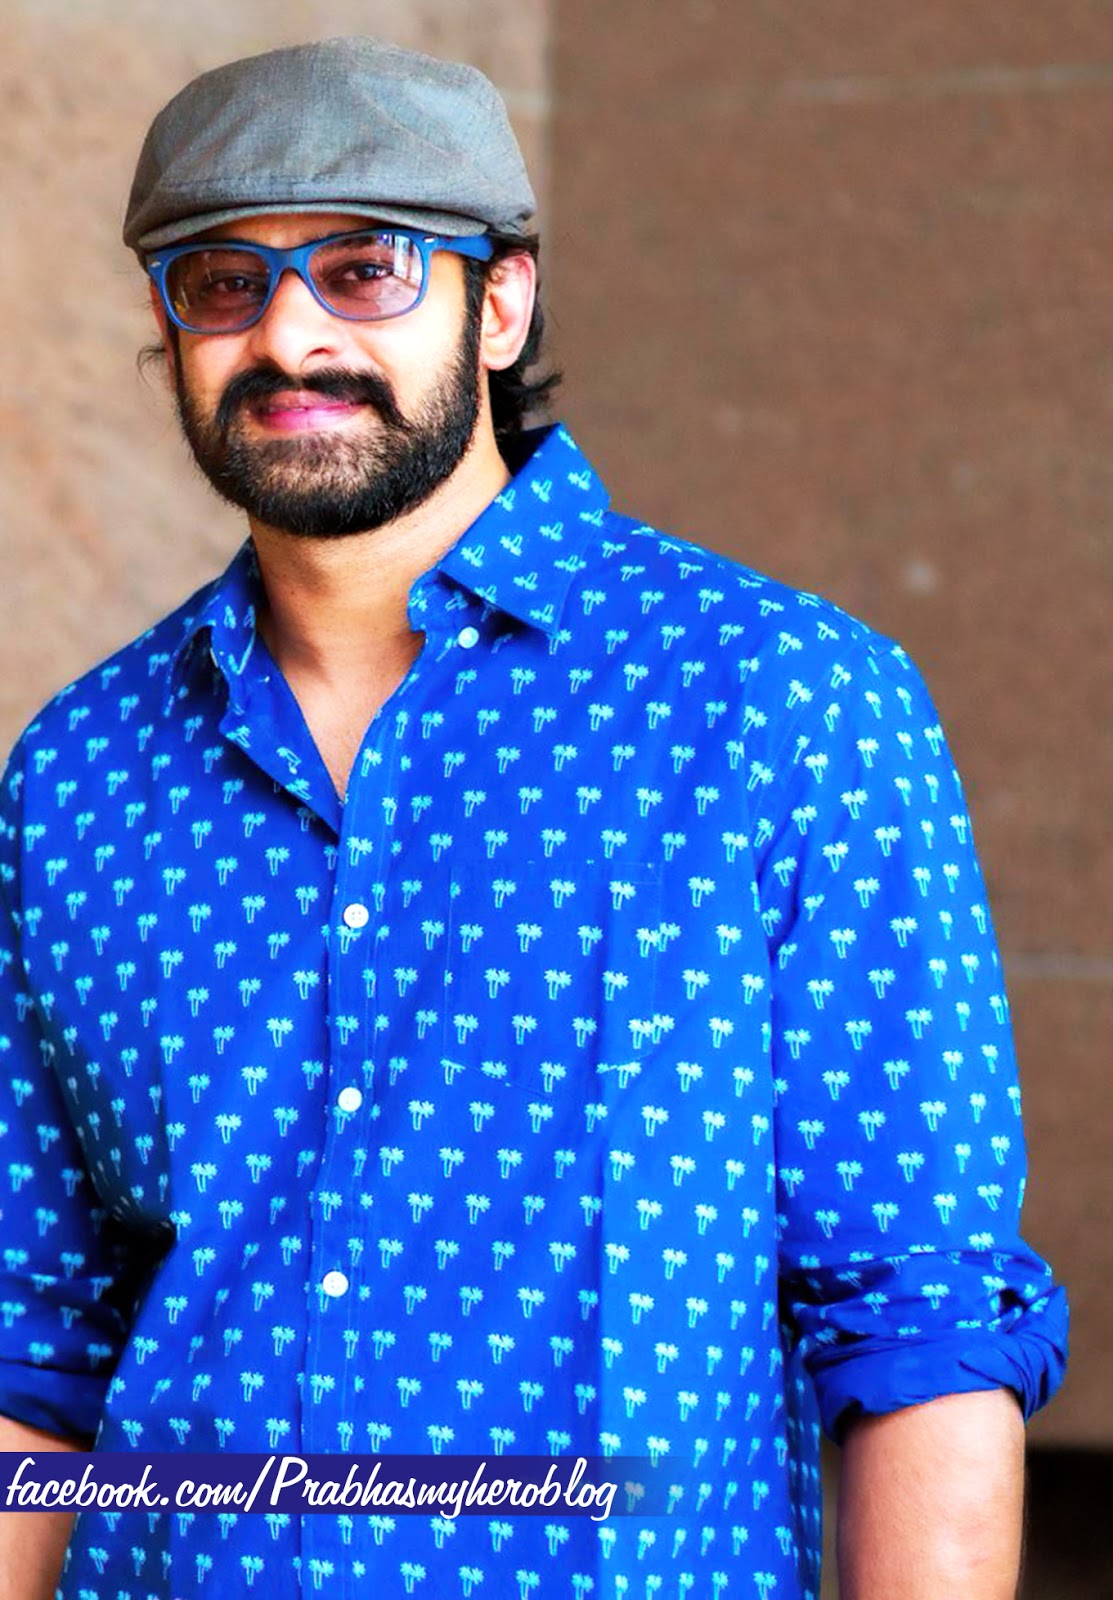 prabhasmyhero blog: young rebel star prabhas- couple of hd stills